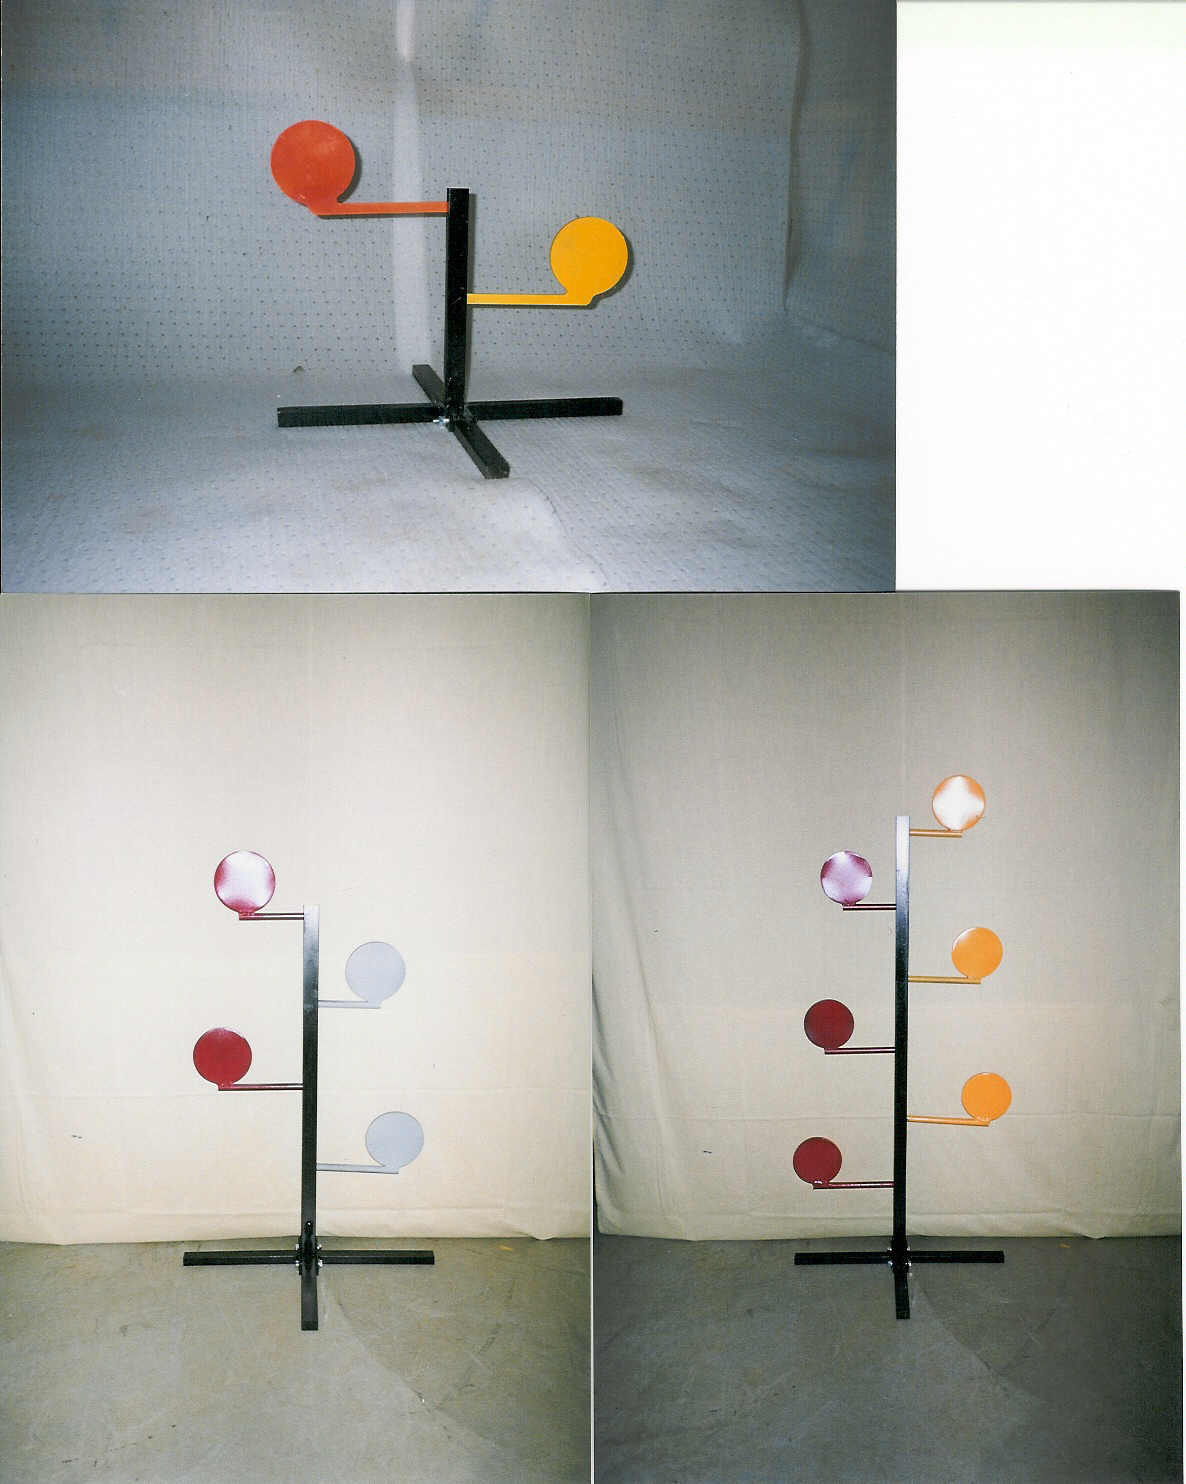 2, 4, or 6 paddle dueling tree target stands